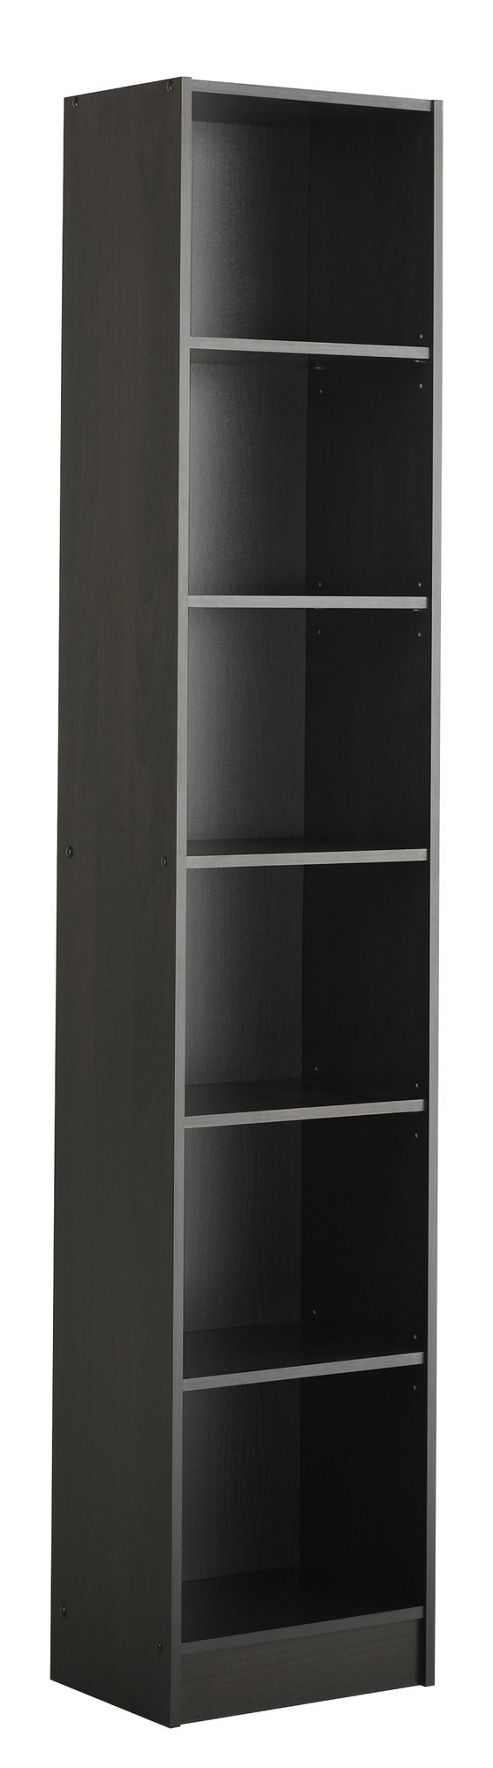 Parisot Besides Bookcase - Wenge